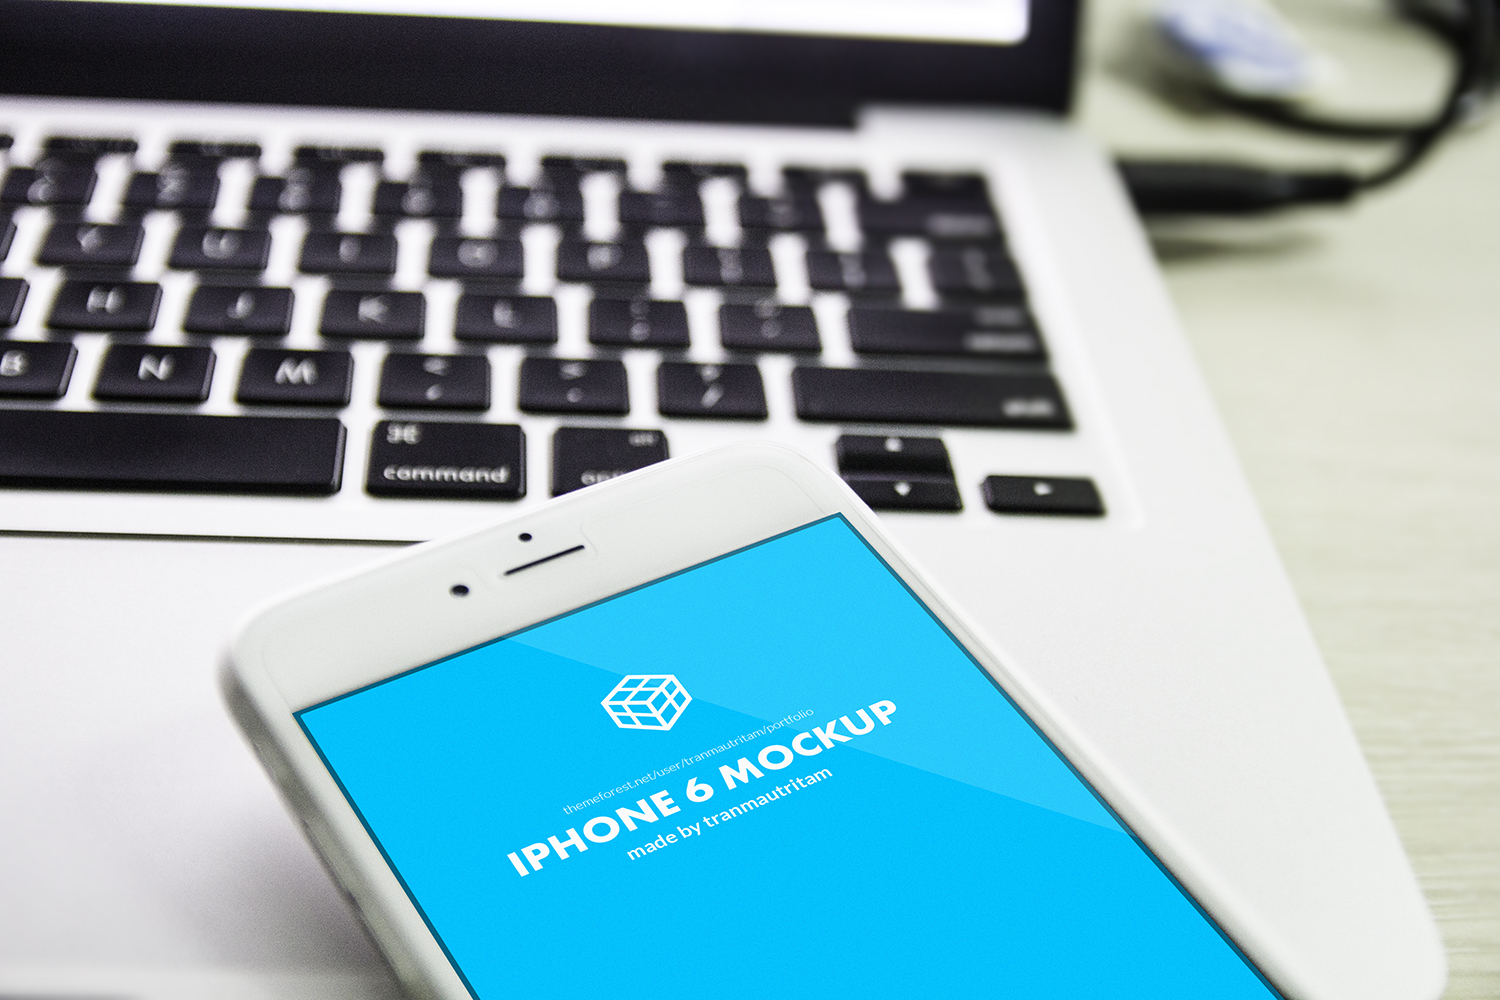 5 Free Photorealistic iPhone 6 Plus Mockups